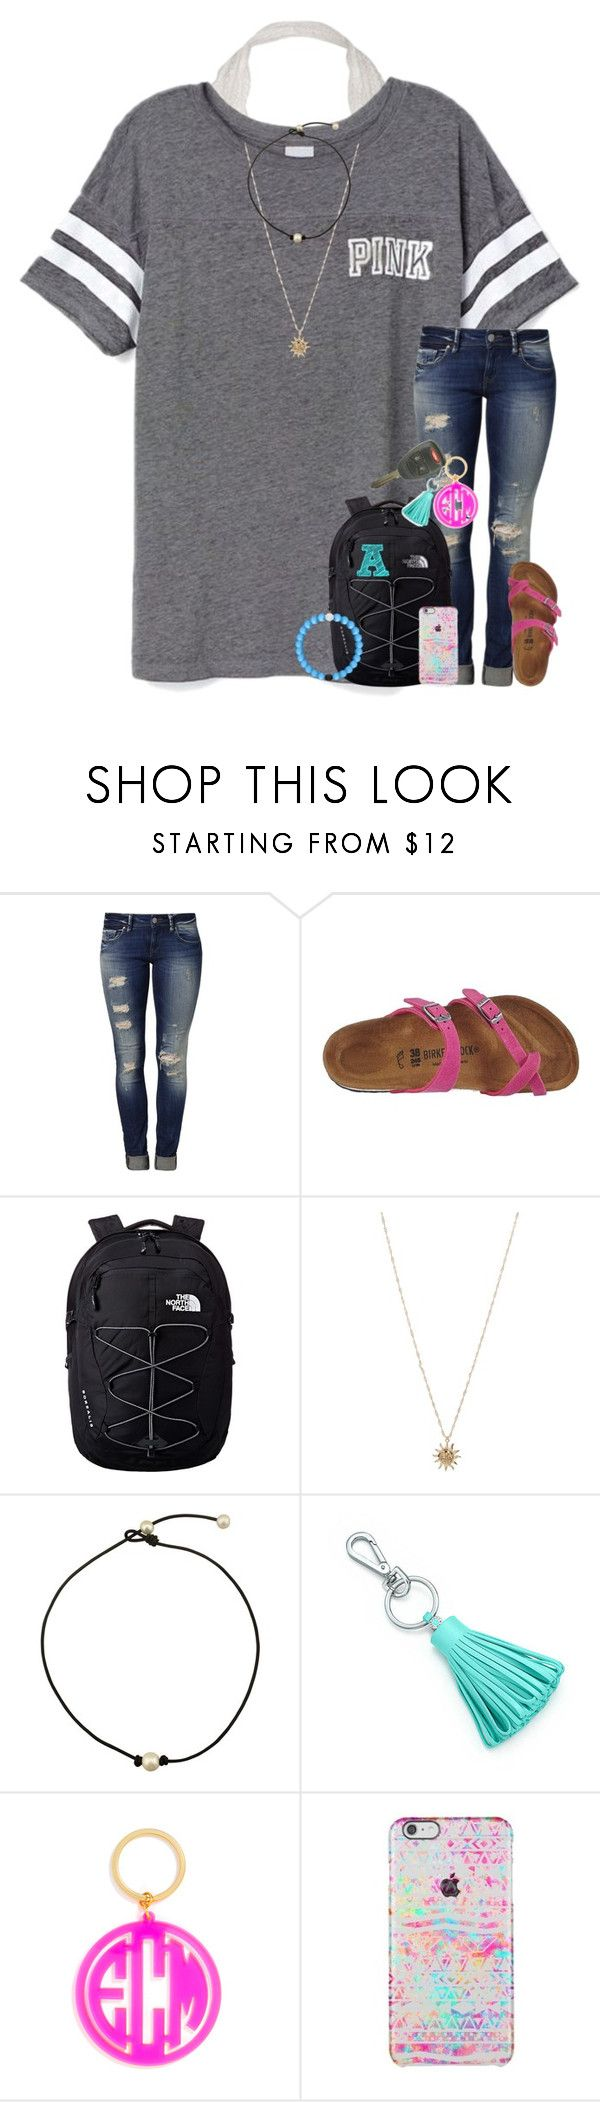 """Jeep Contest ends tomorrow night."" by abbypj ❤ liked on Polyvore featuring Victoria's Secret, Mavi, Birkenstock, The North Face, ASOS, Tiffany & Co. and BaubleBar"